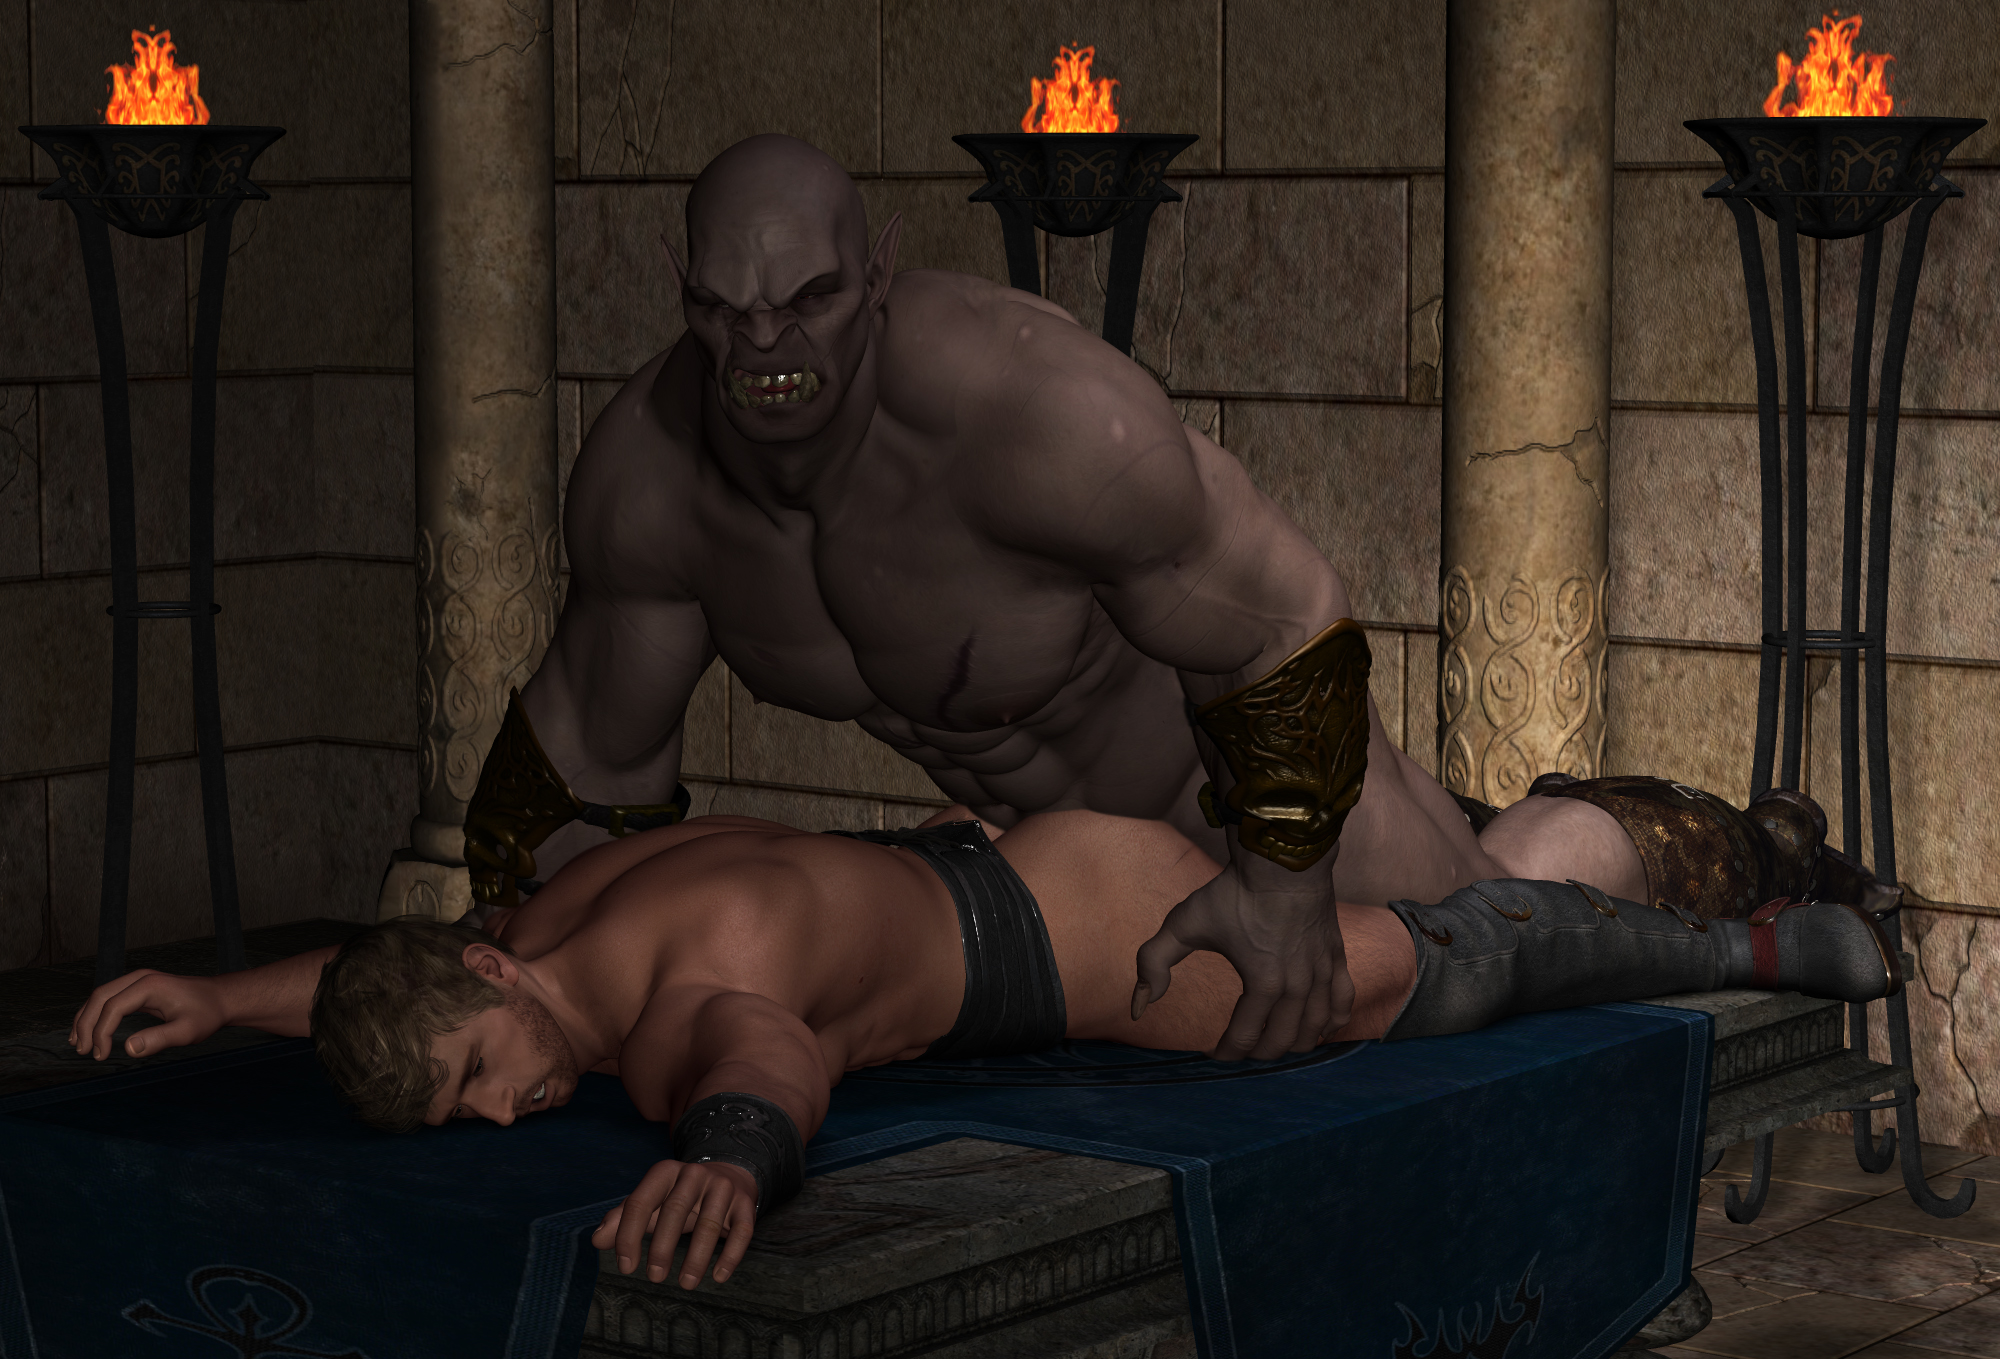 Monster fucks gay human sex scene